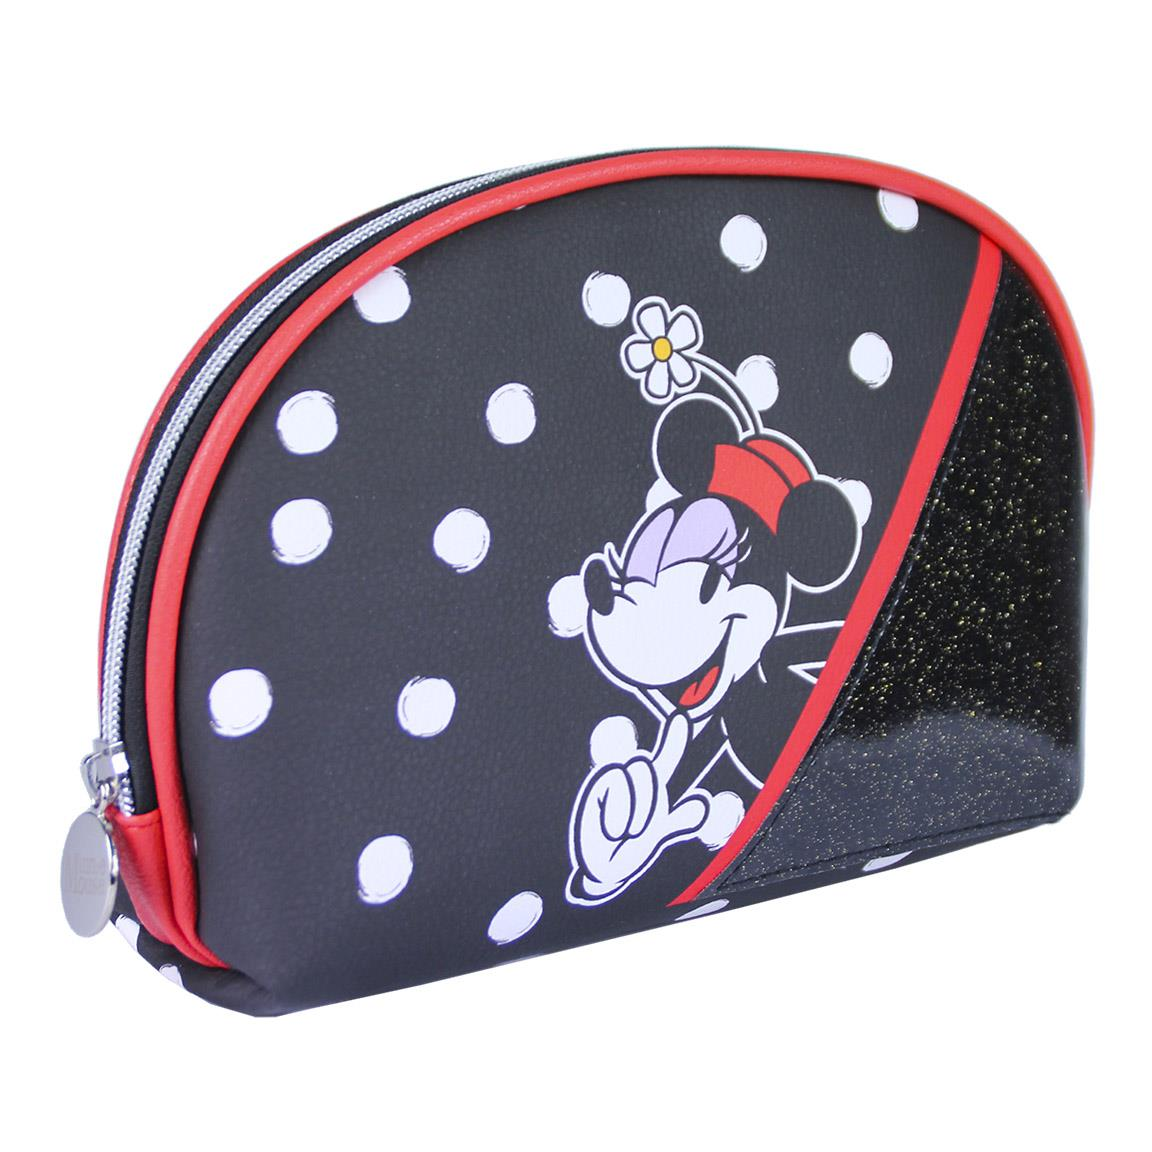 Disney - Trousse de toilette Minnie